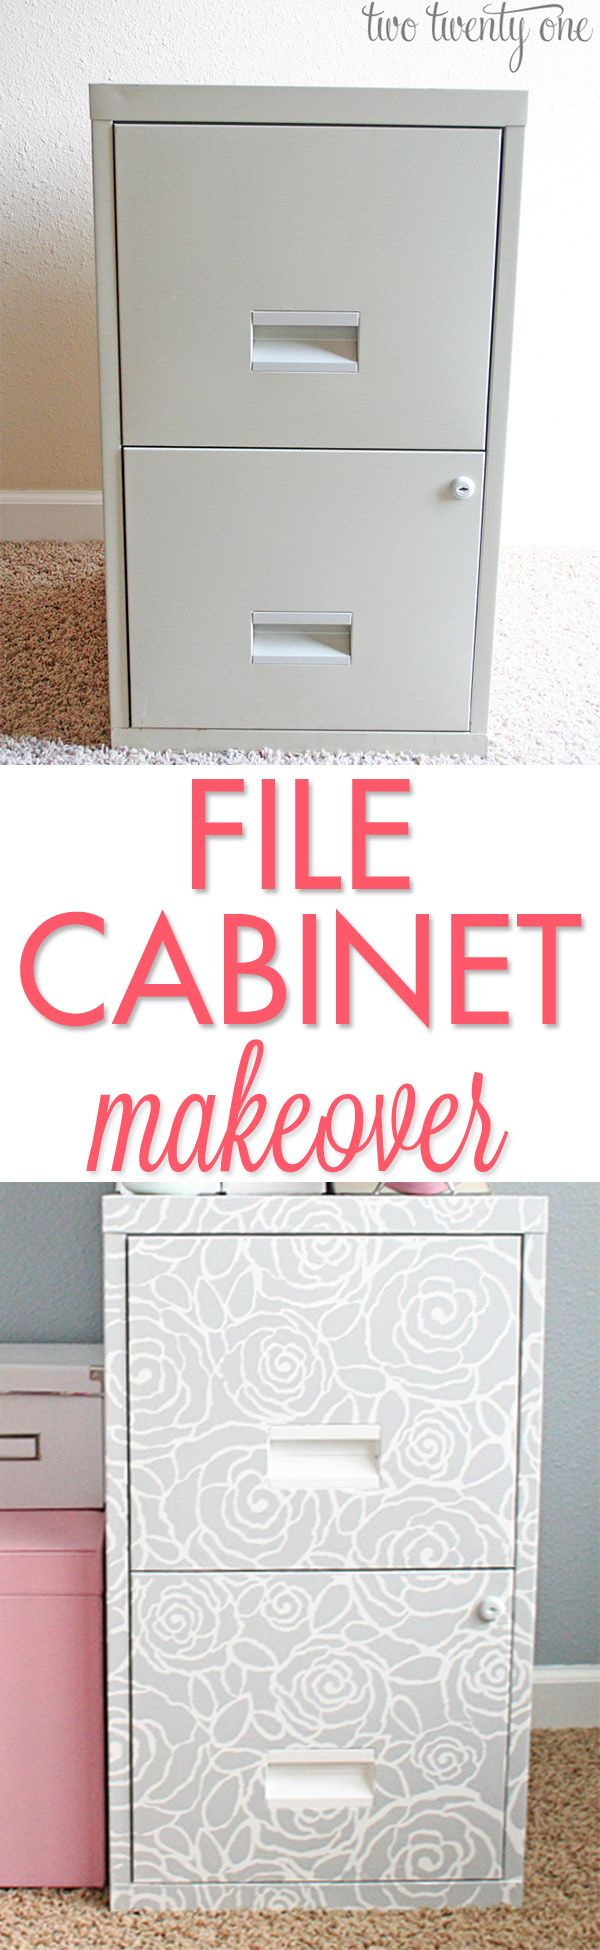 Drab to fab! File cabinet makeover!